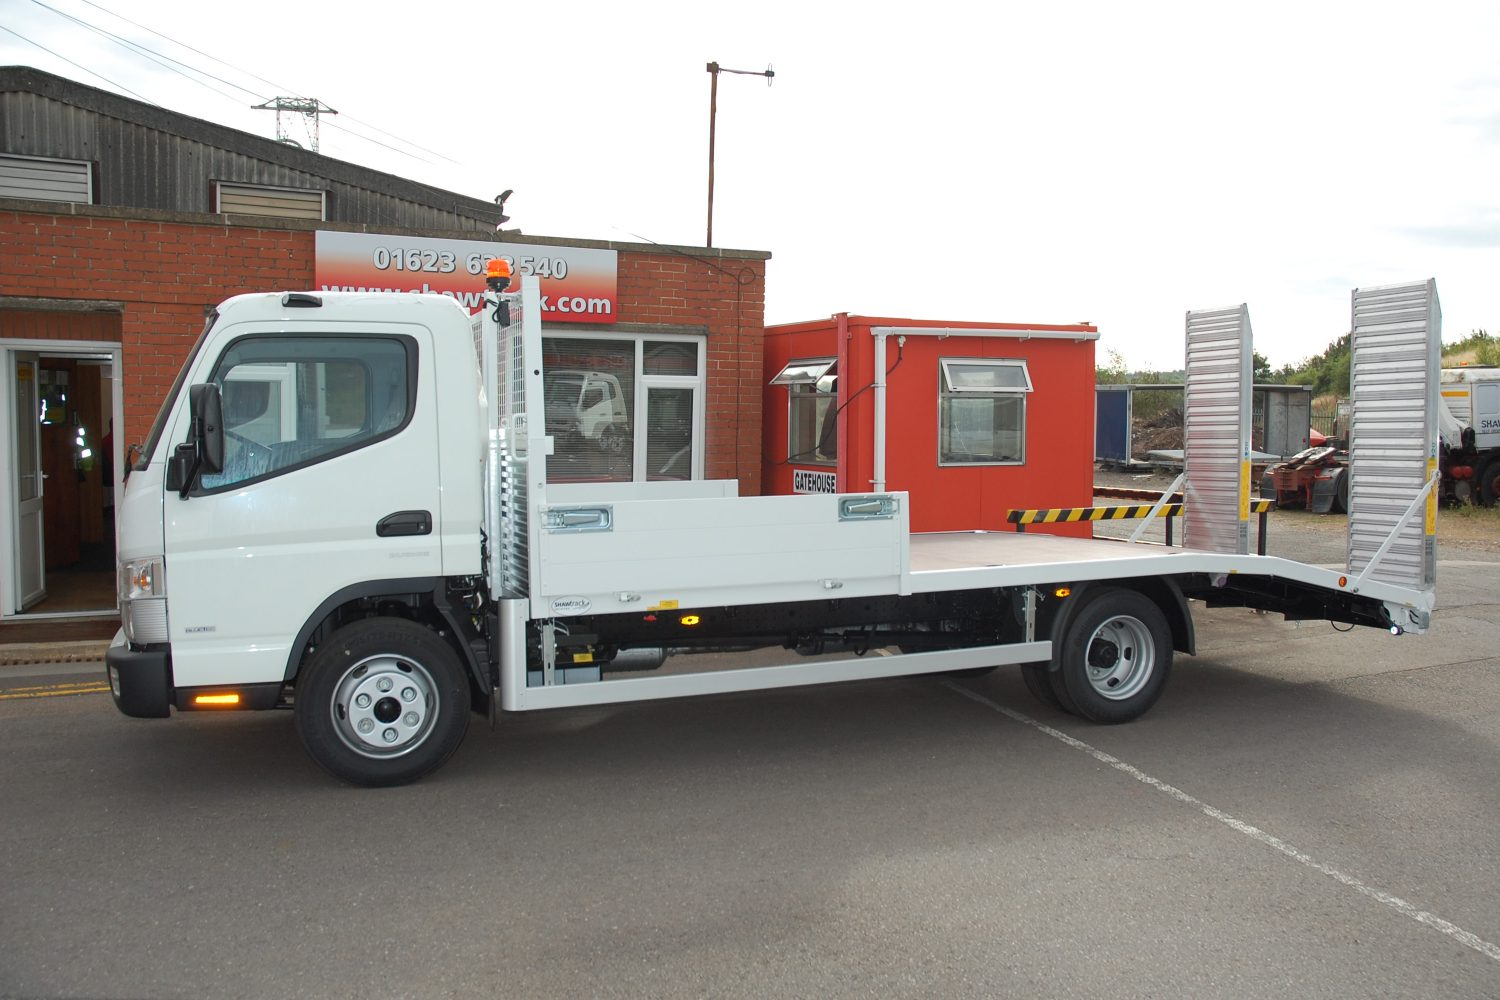 FTH Hire Group order 7.5t lightweight beavertail